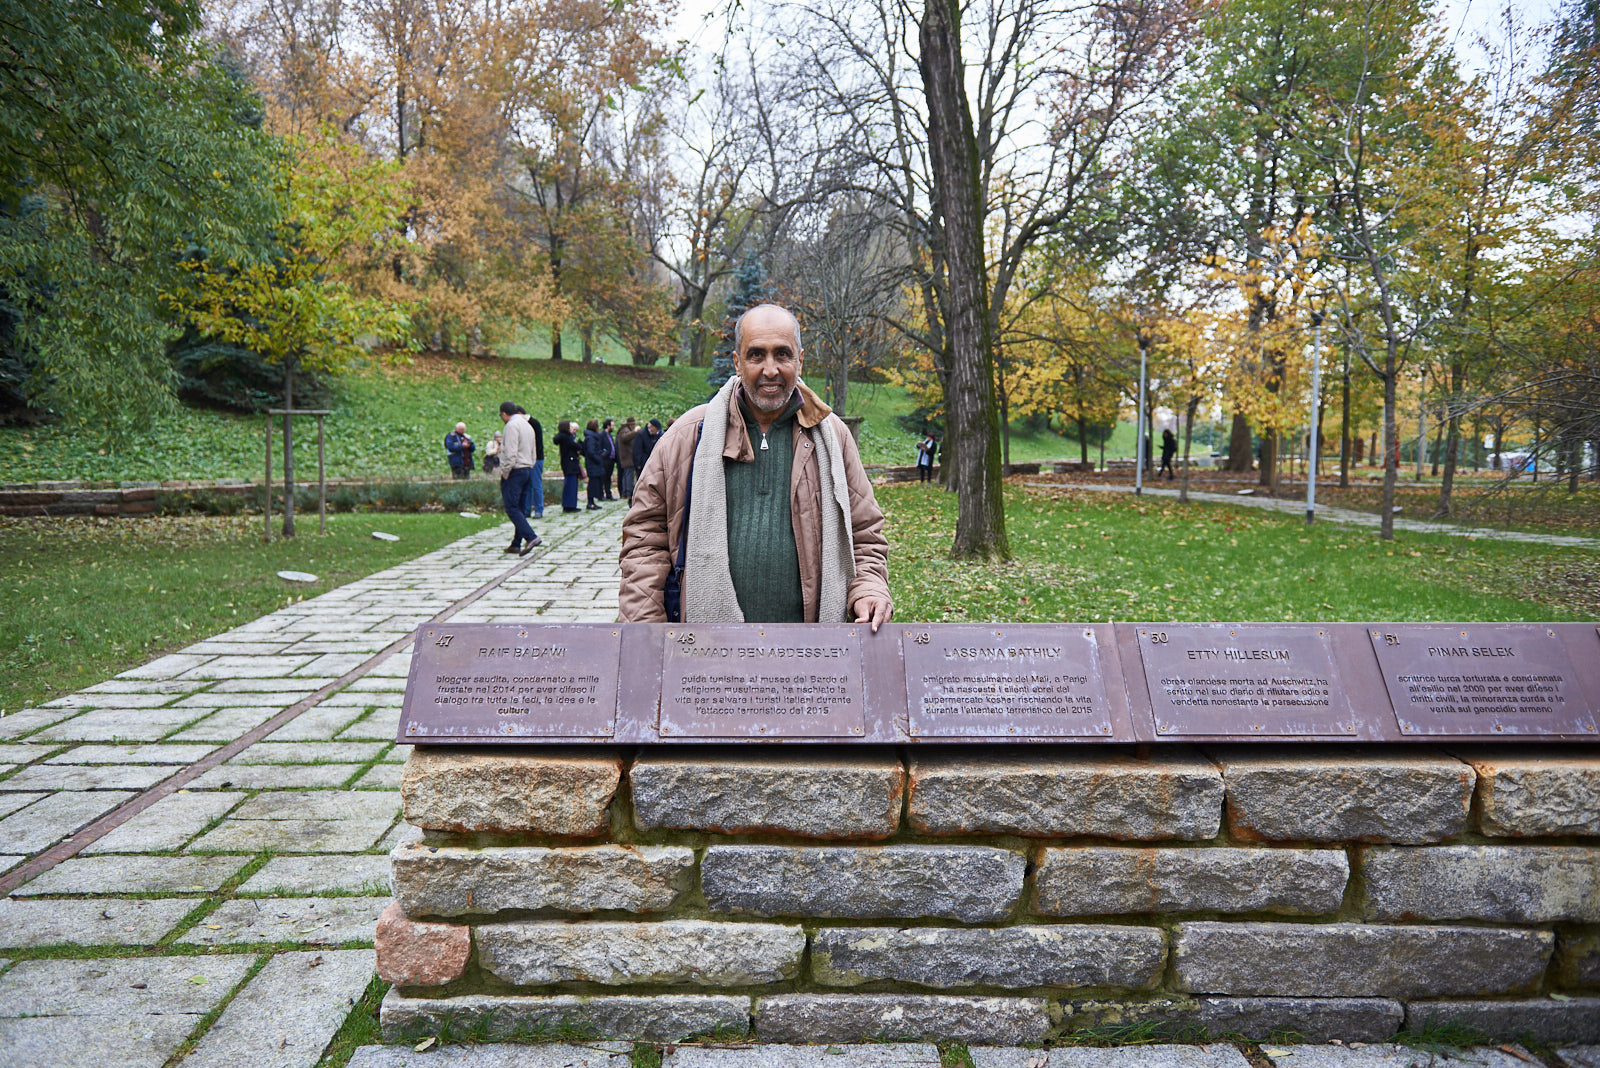 Hamadi with the memorial stone dedicated to him